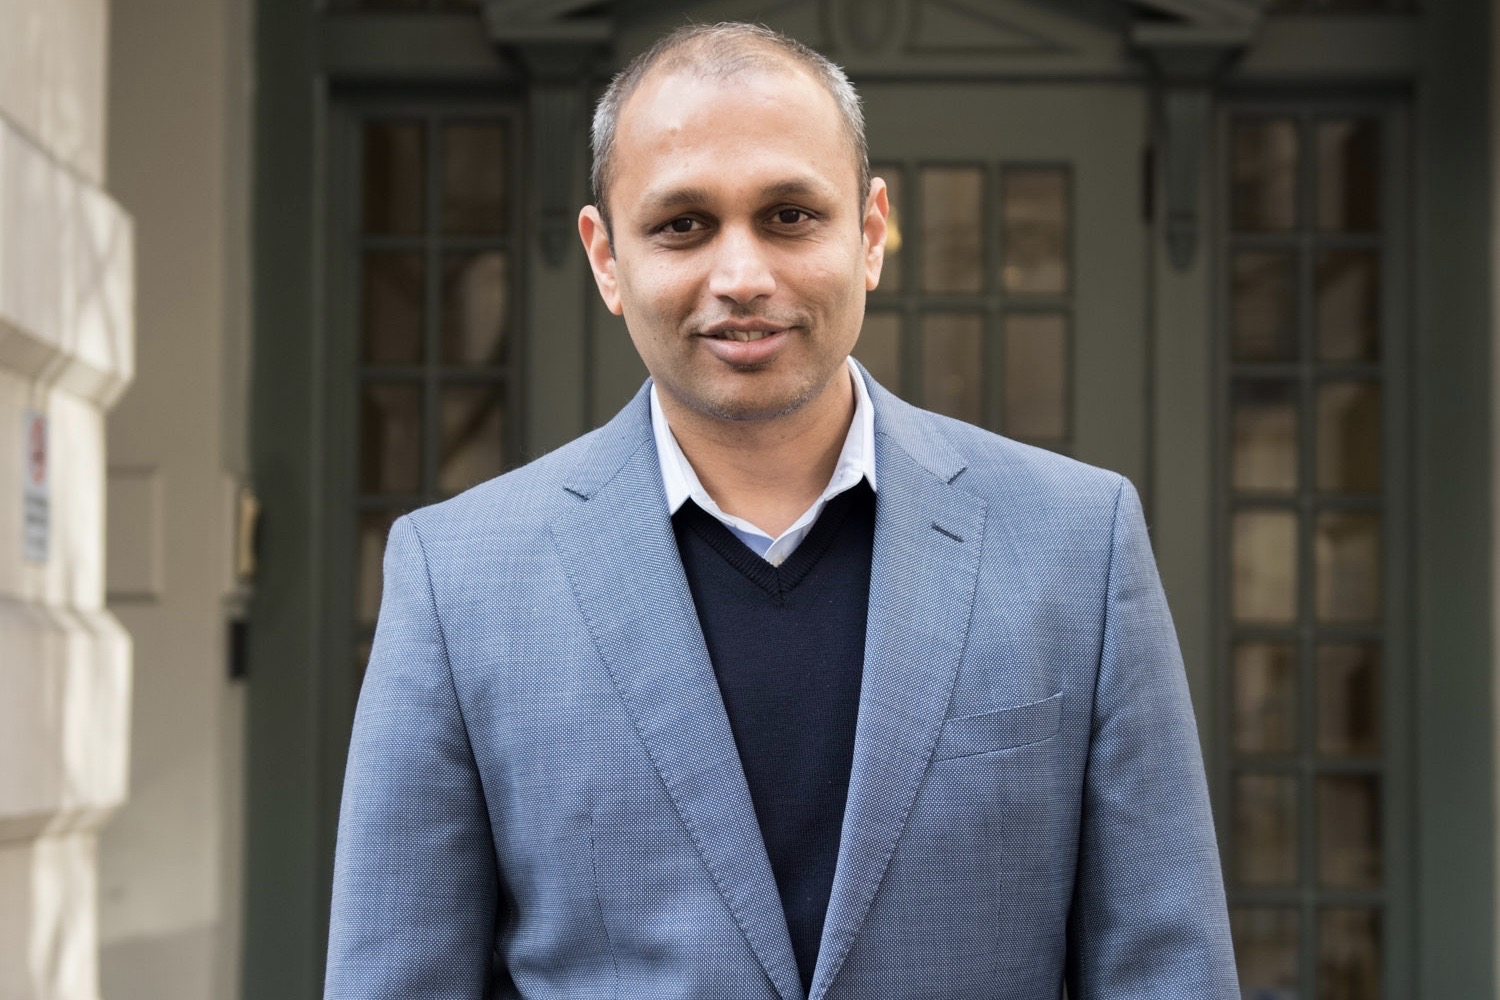 KenSci co-founder and CEO Samir Manjure